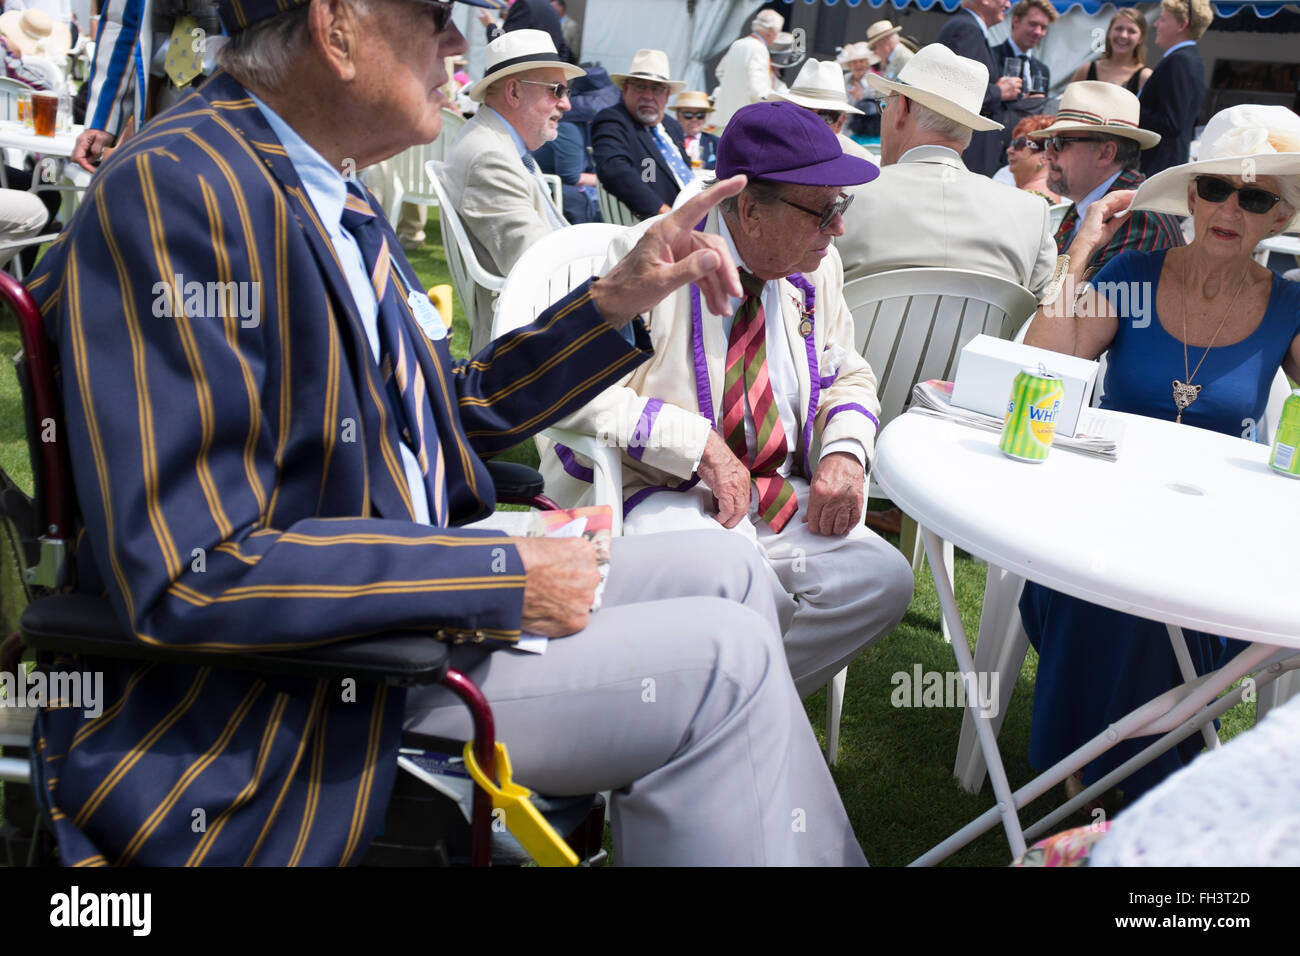 Catching up over drinks at the Bridge Bar at Henley Royal Regatta. - Stock Image